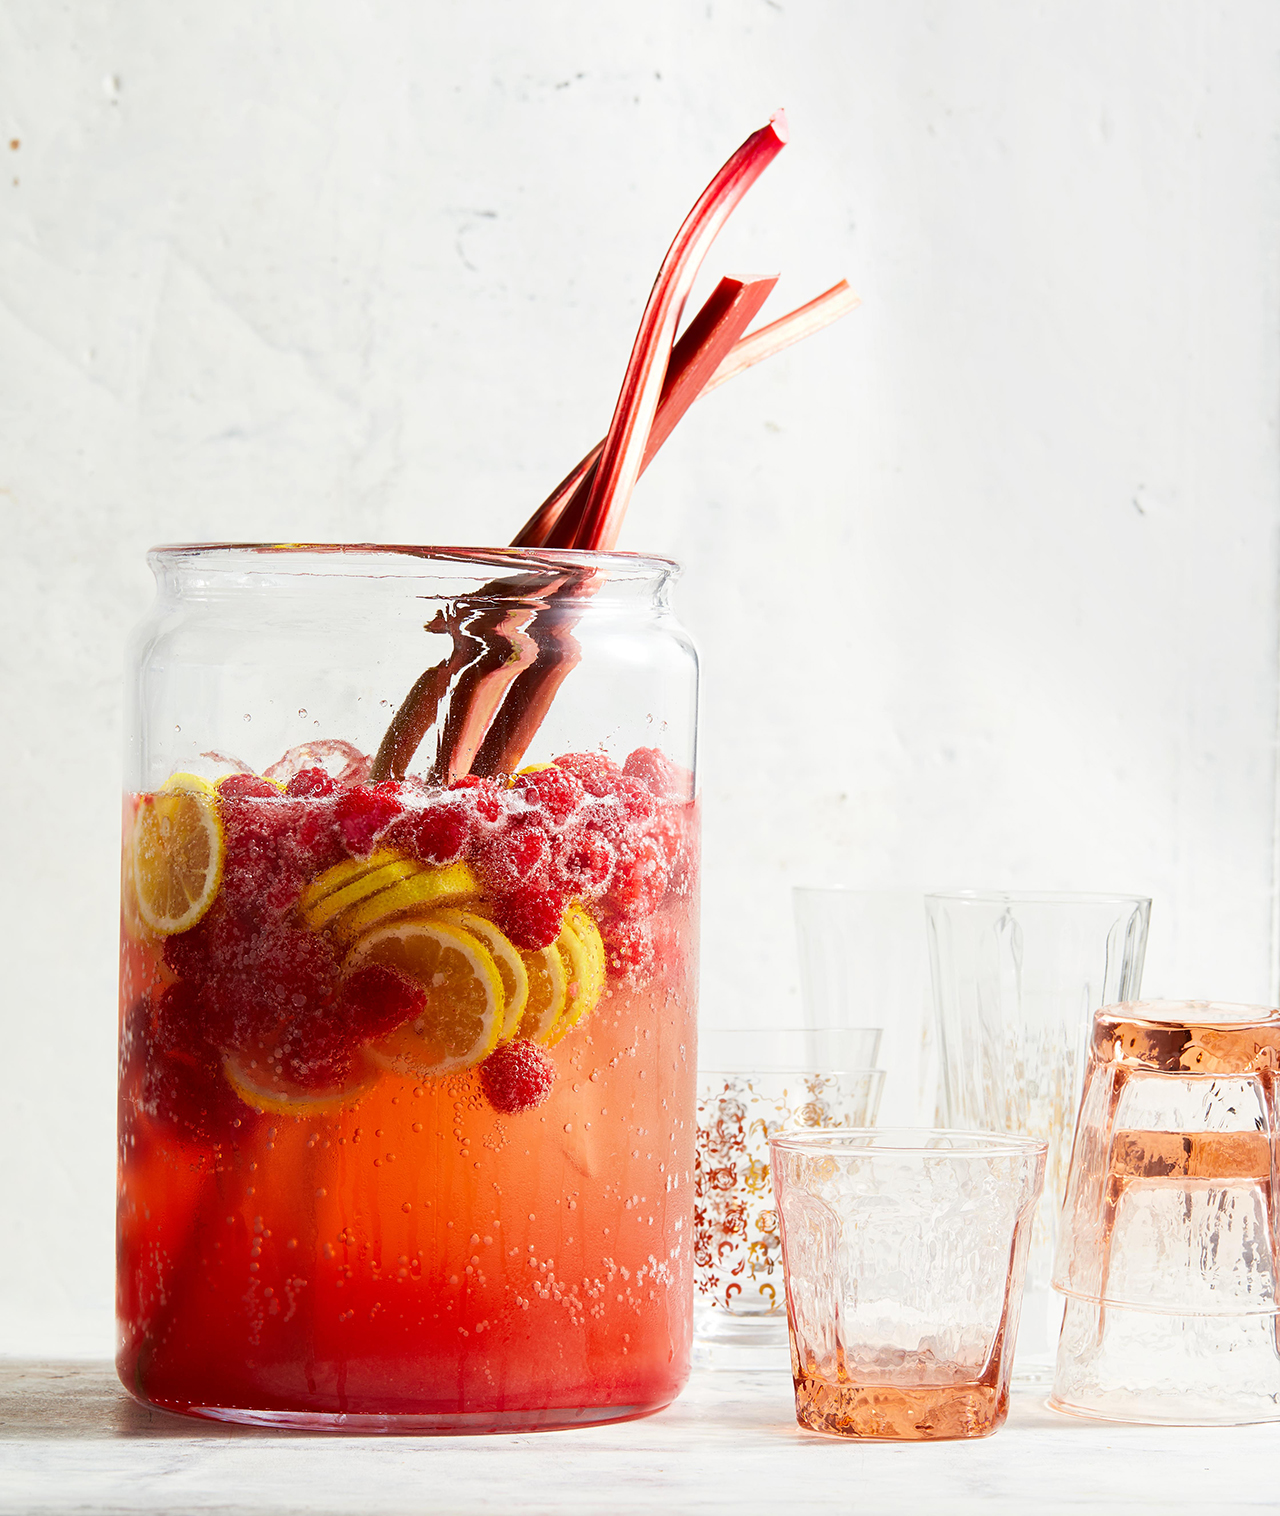 Ginger Rhubarb-Raspberry Punch